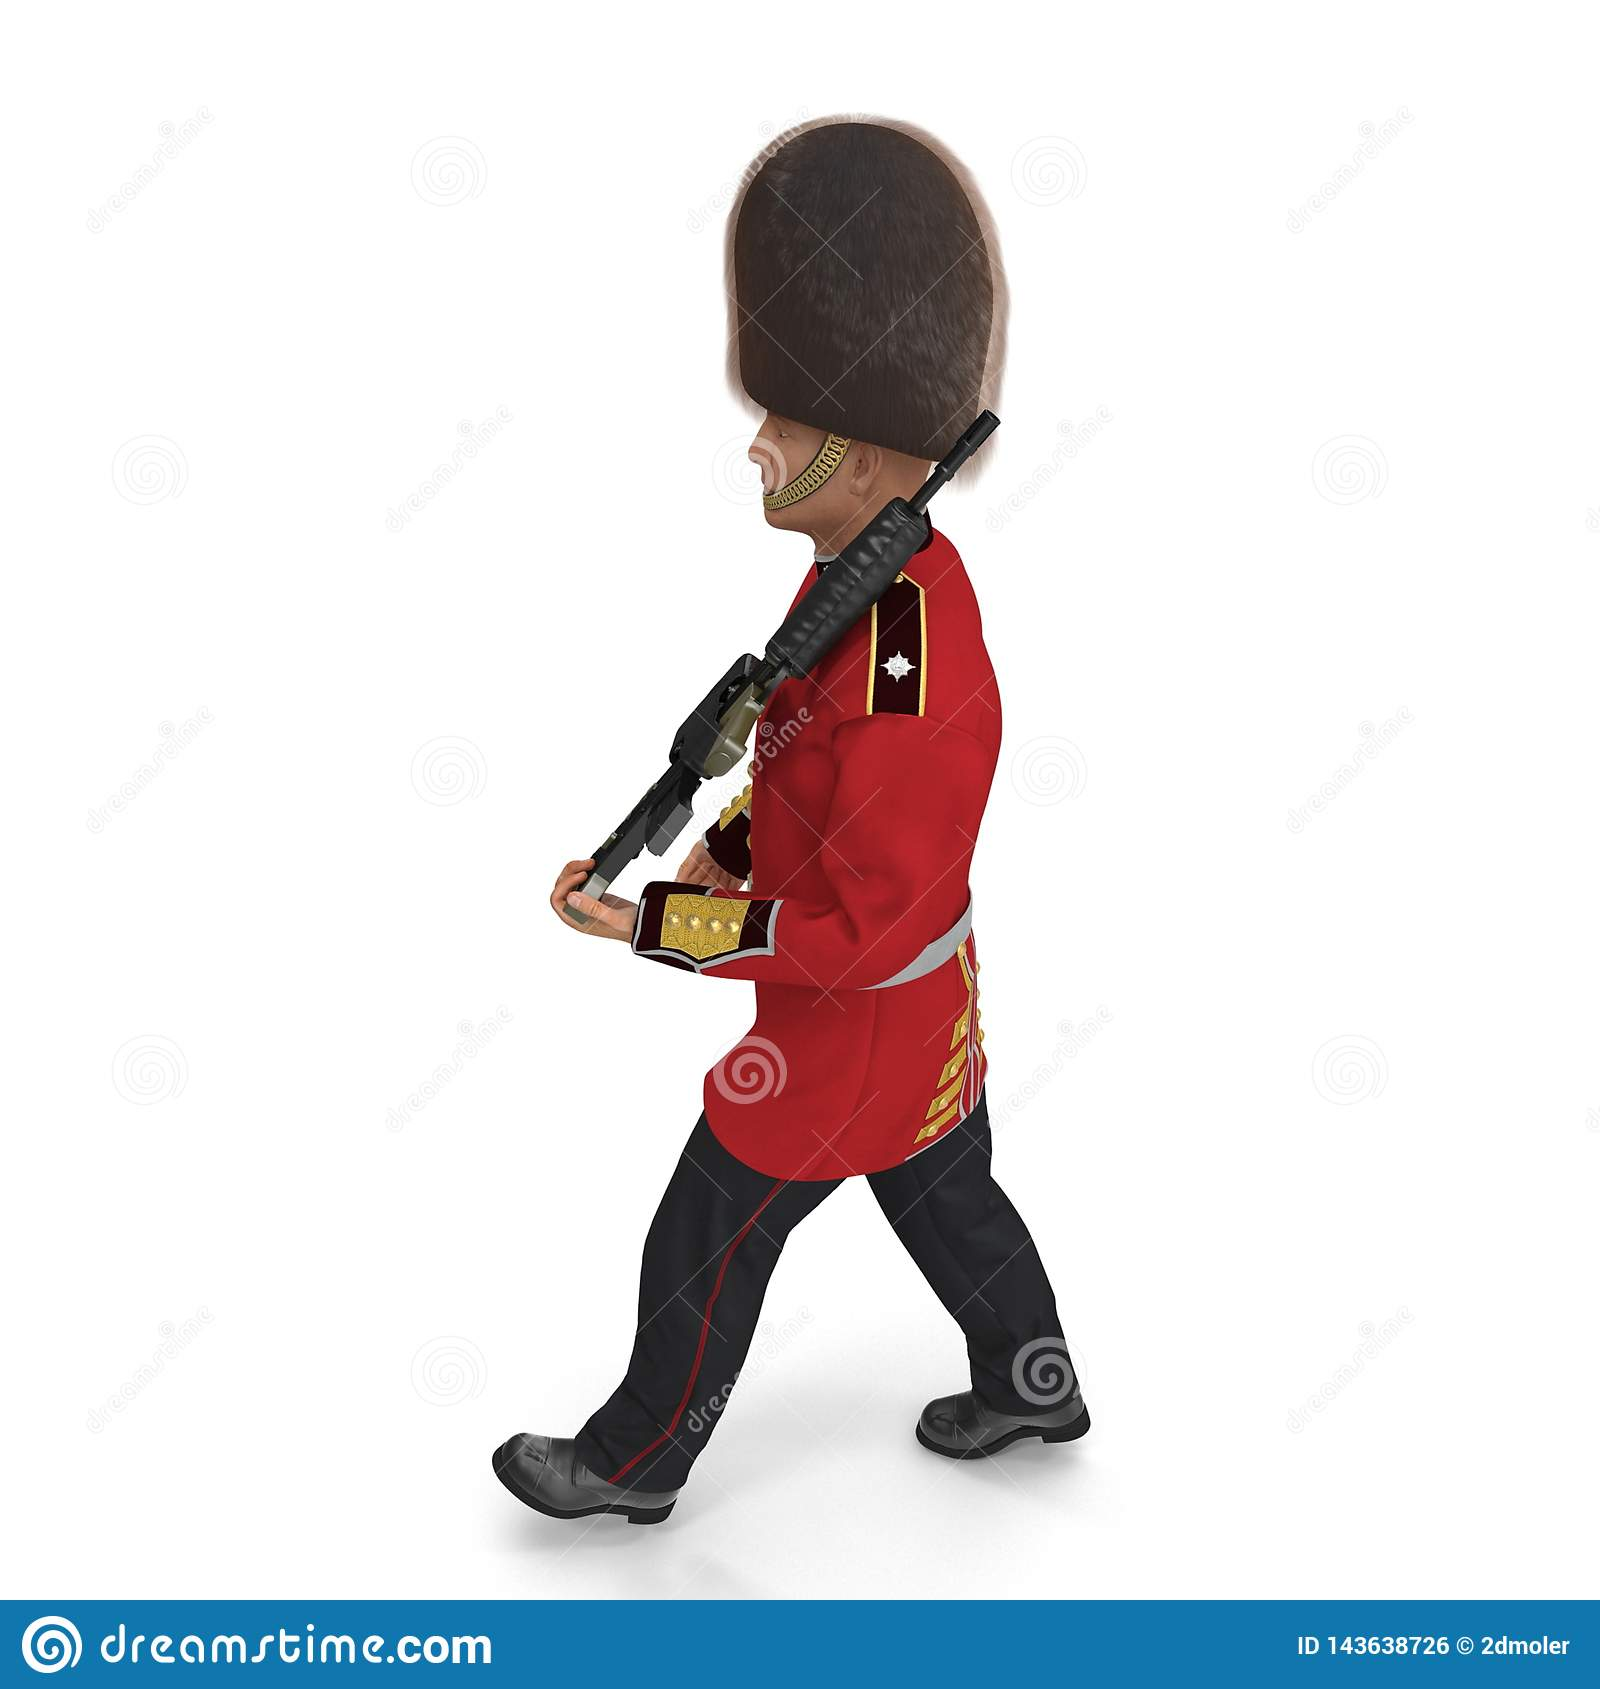 Marching British Royal Guard Holding Gun Isolated on White Background 3D Illustration